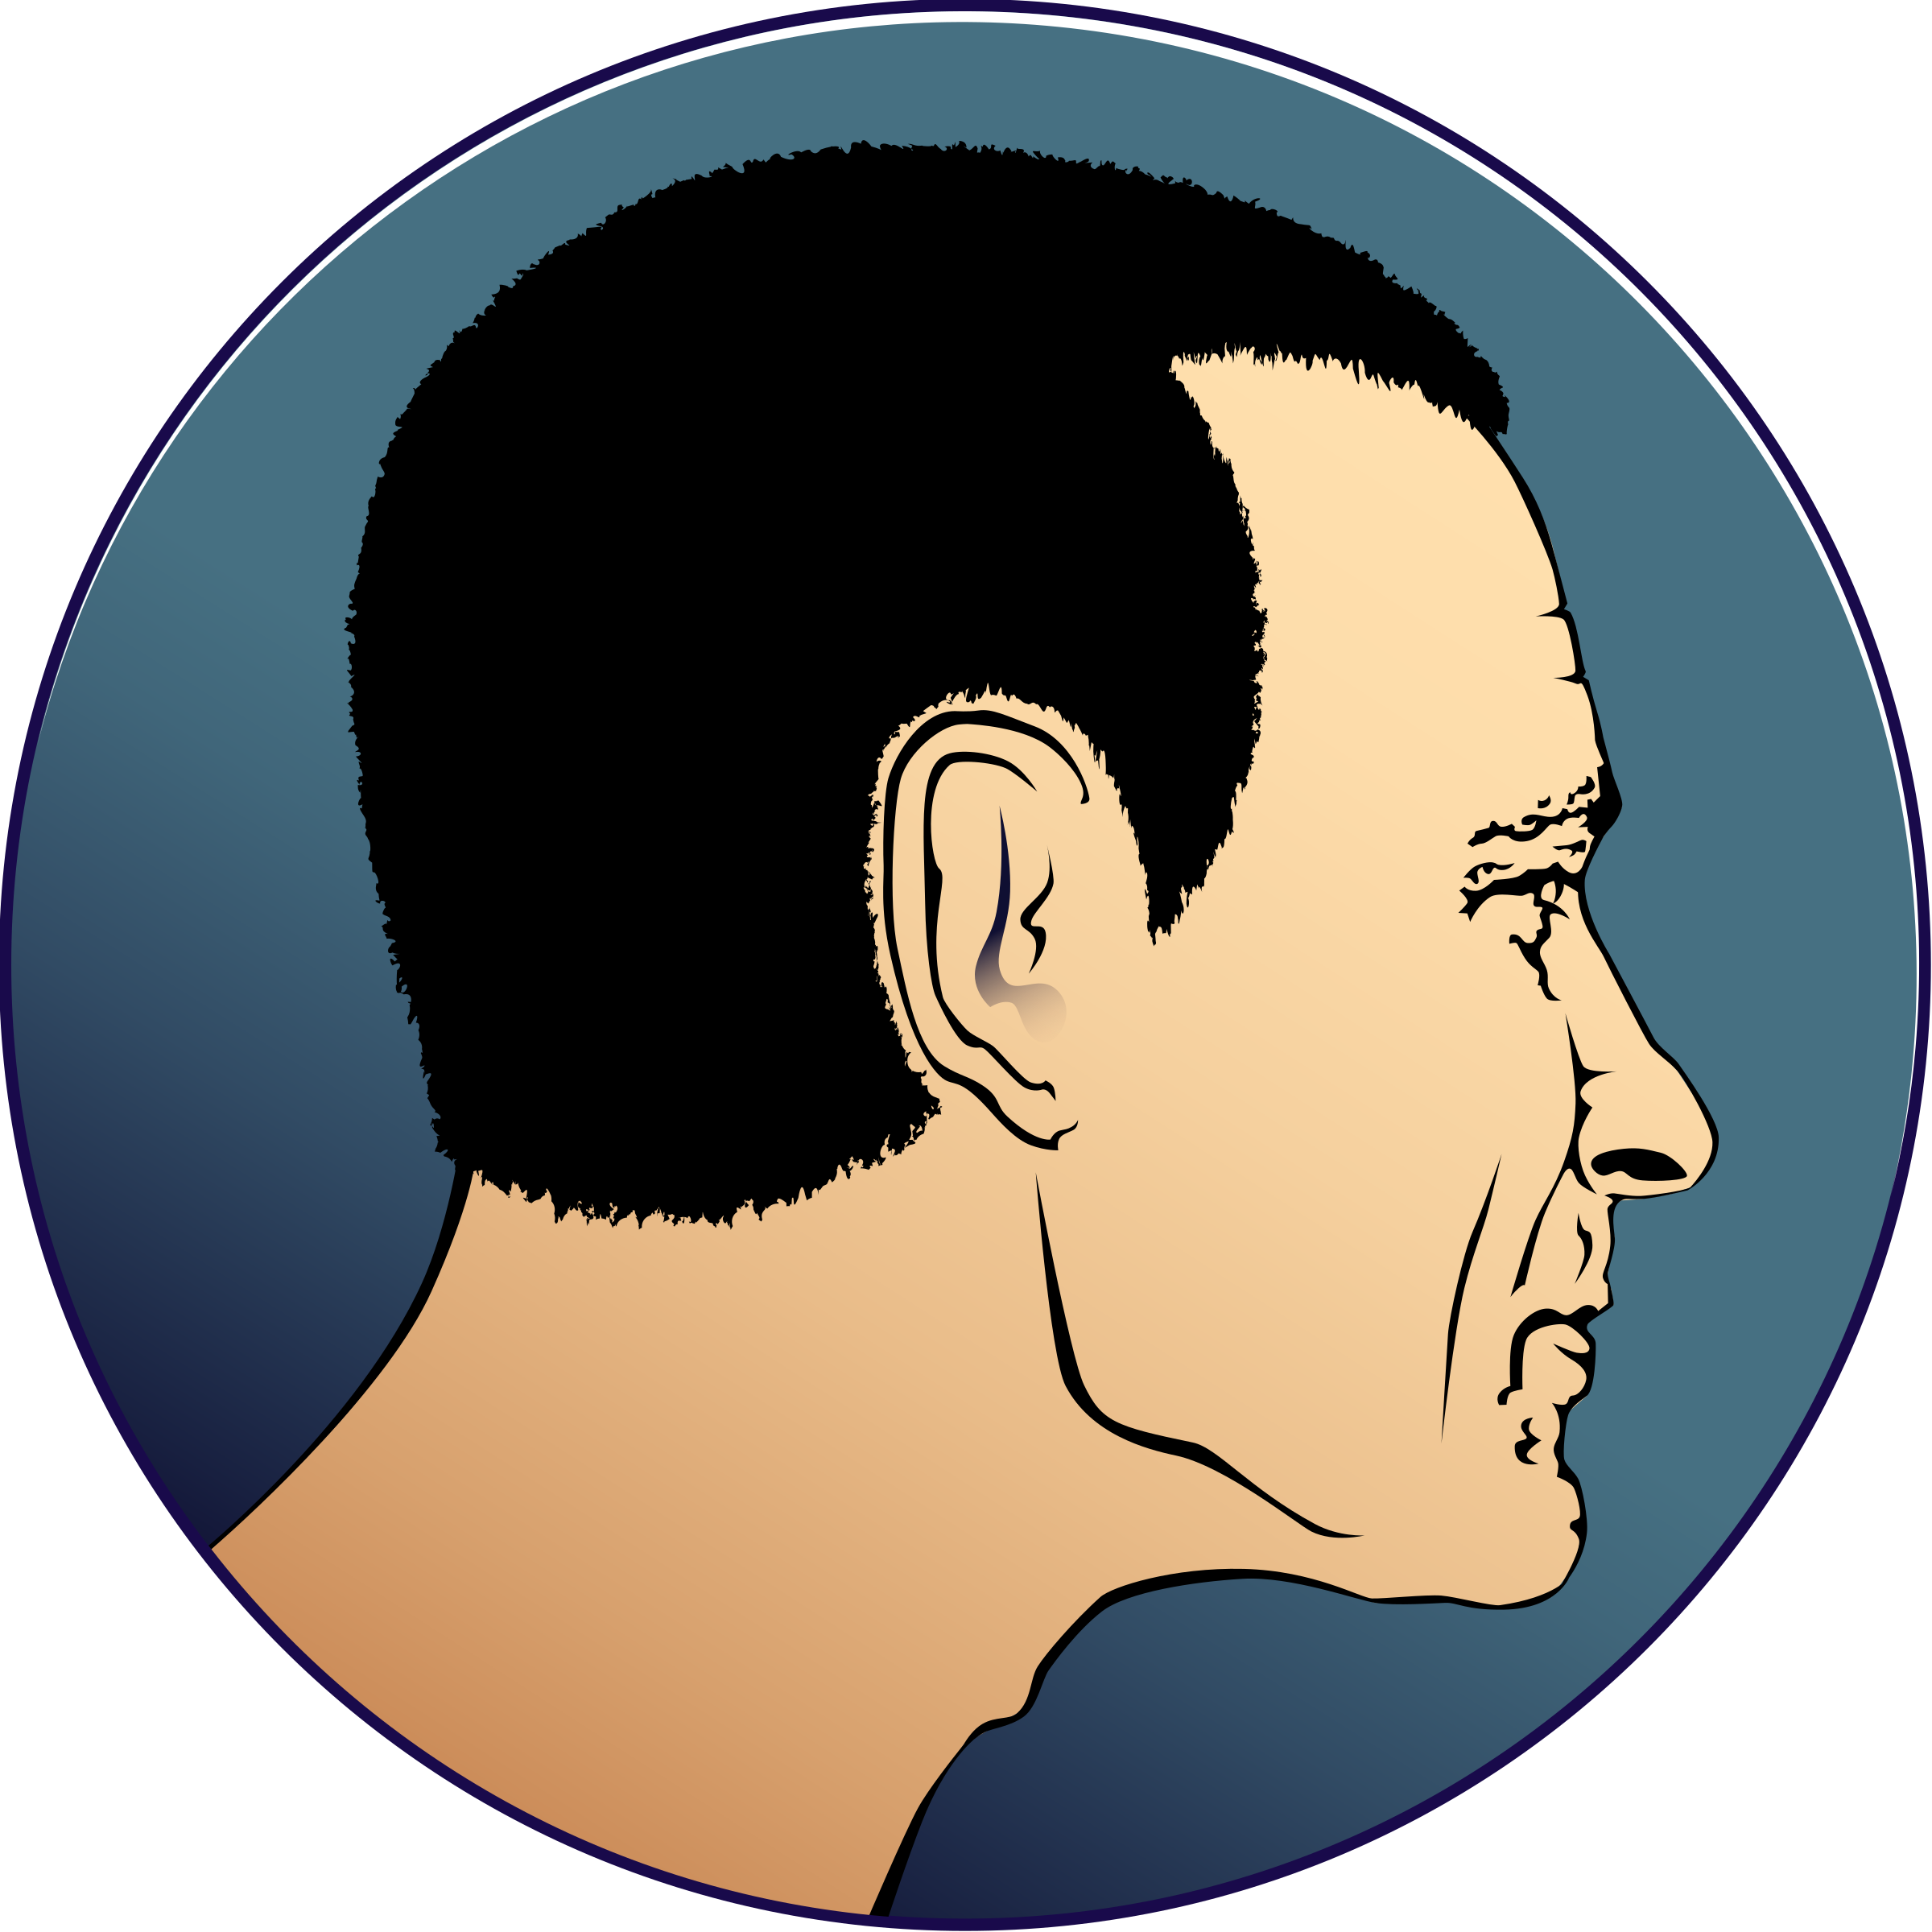 vector freeuse Man s head profile. Chin clipart boy side view.